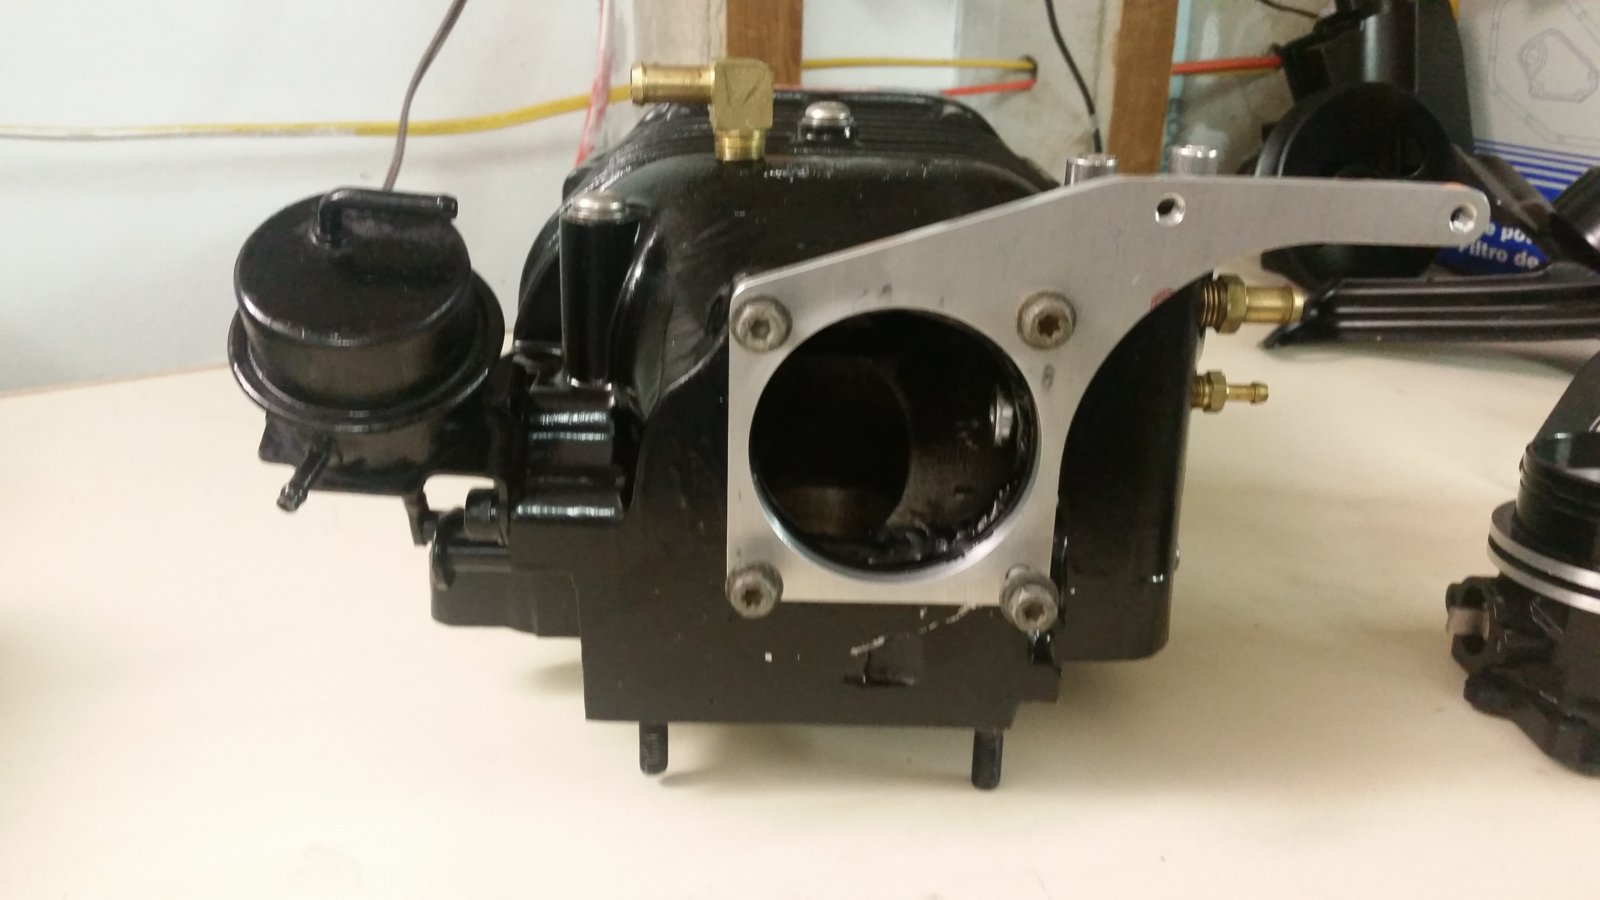 Boosted Technologies Eaton M90 Supercharger Kit | Jeep Wrangler TJ Forum